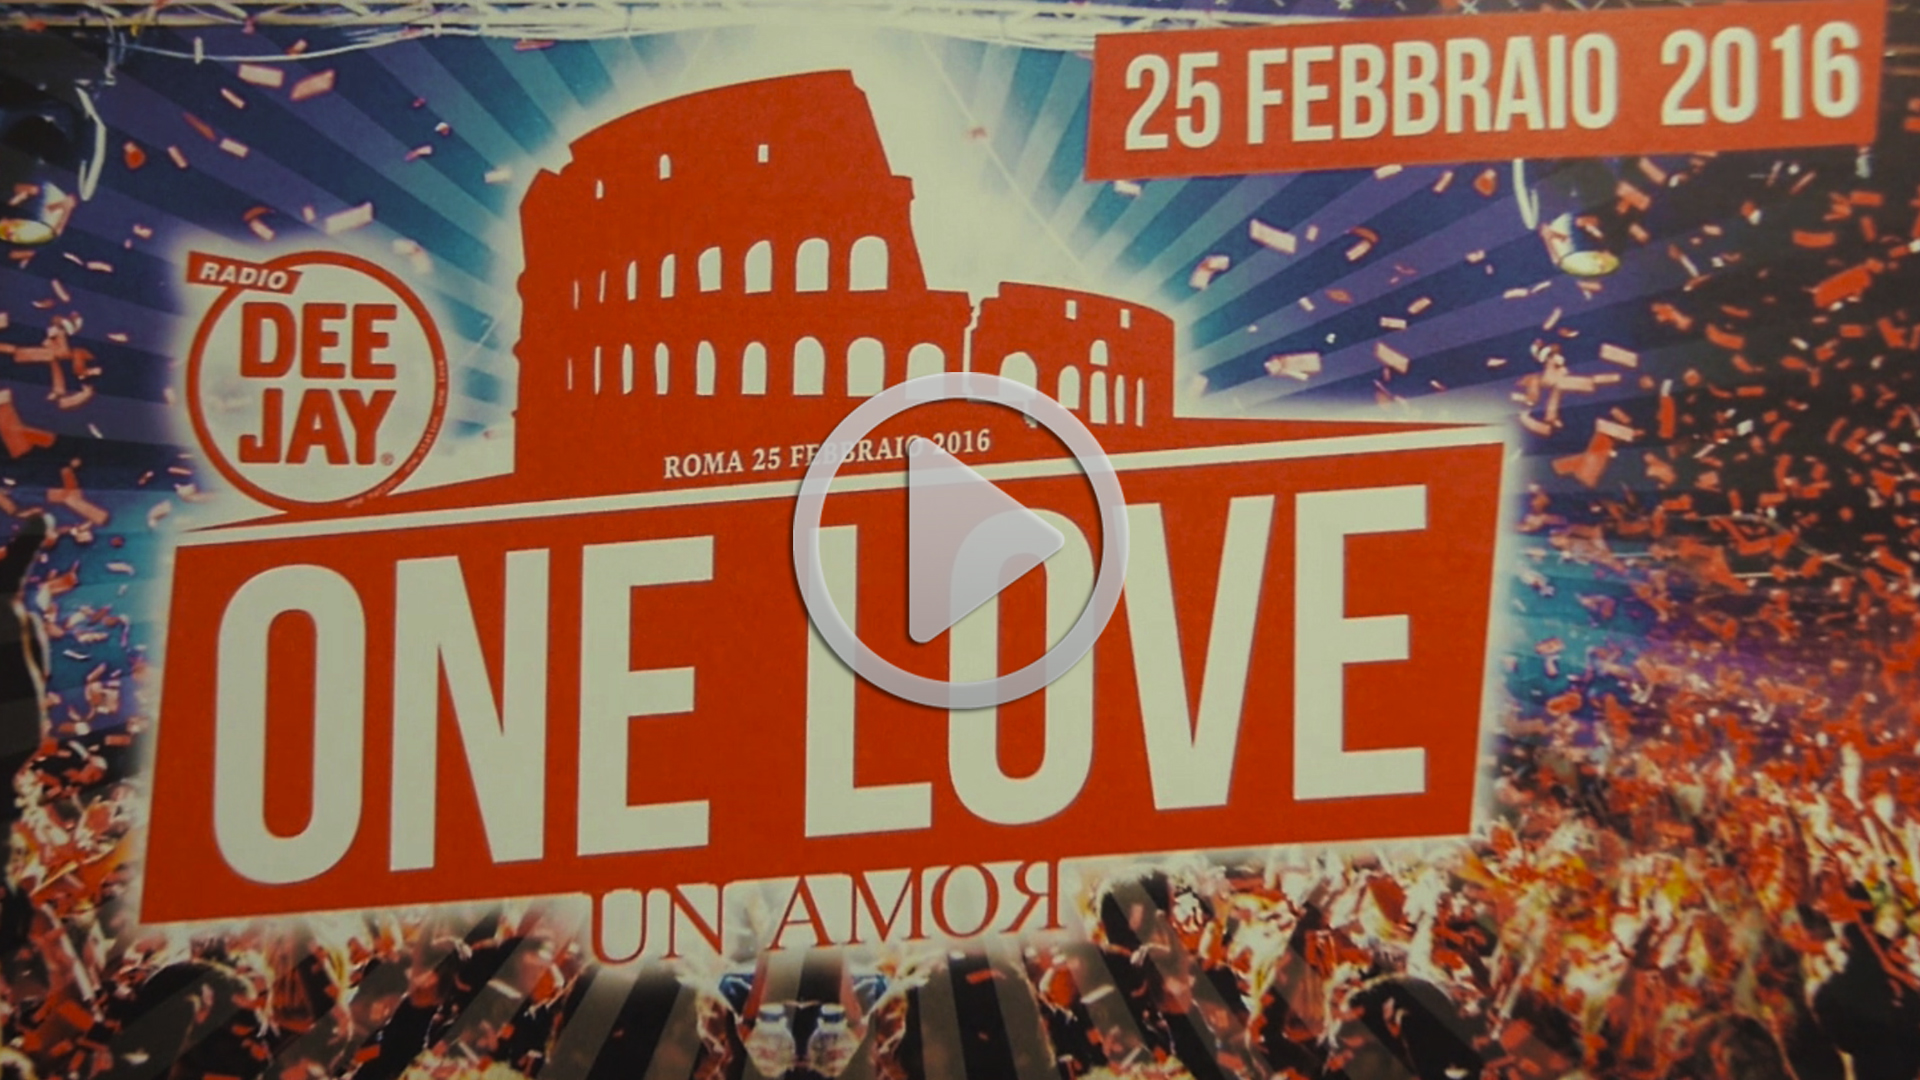 Radio Deejay One Love 2016 Roma